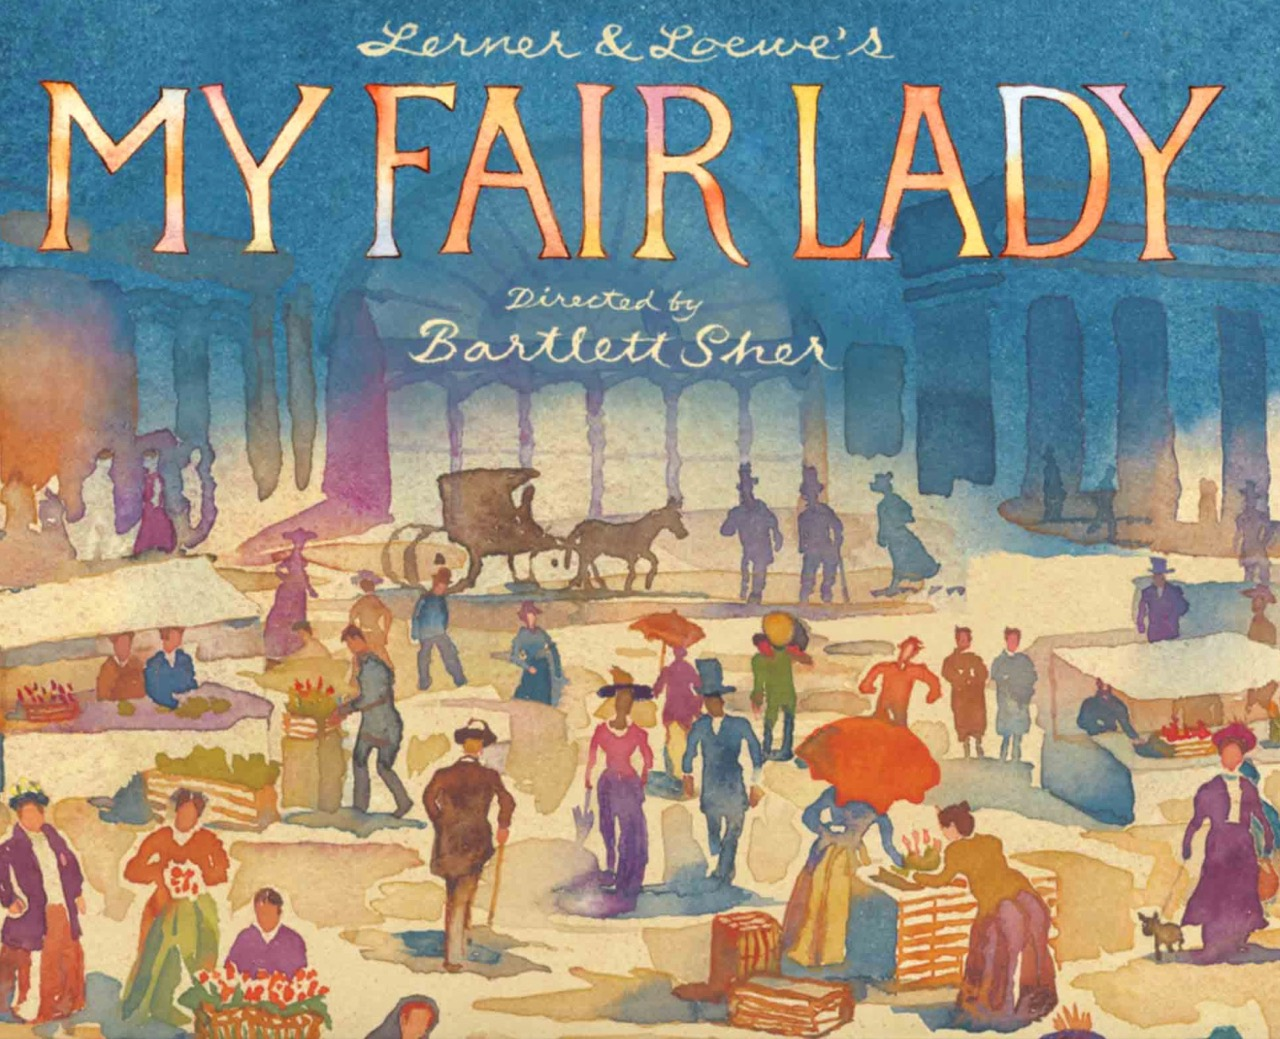 Auction Item 06: My Fair Lady - 2 tickets Saturday Matinee for Saturday September 8, 2018.  Value: $354.--